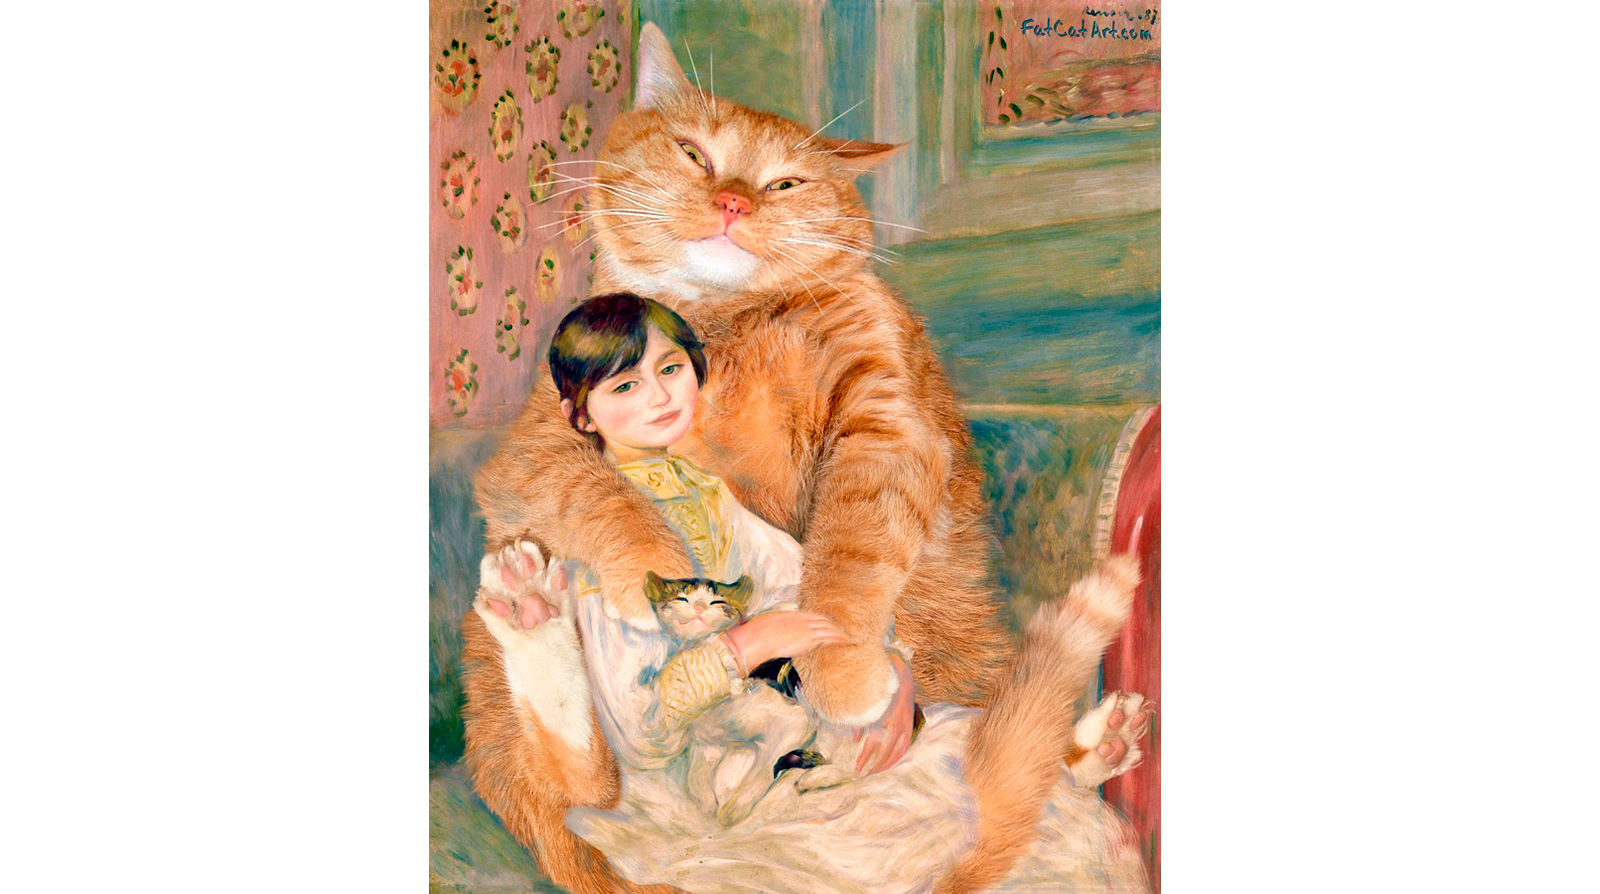 Pierre-Auguste Renoir. The Cat with Julie Manet